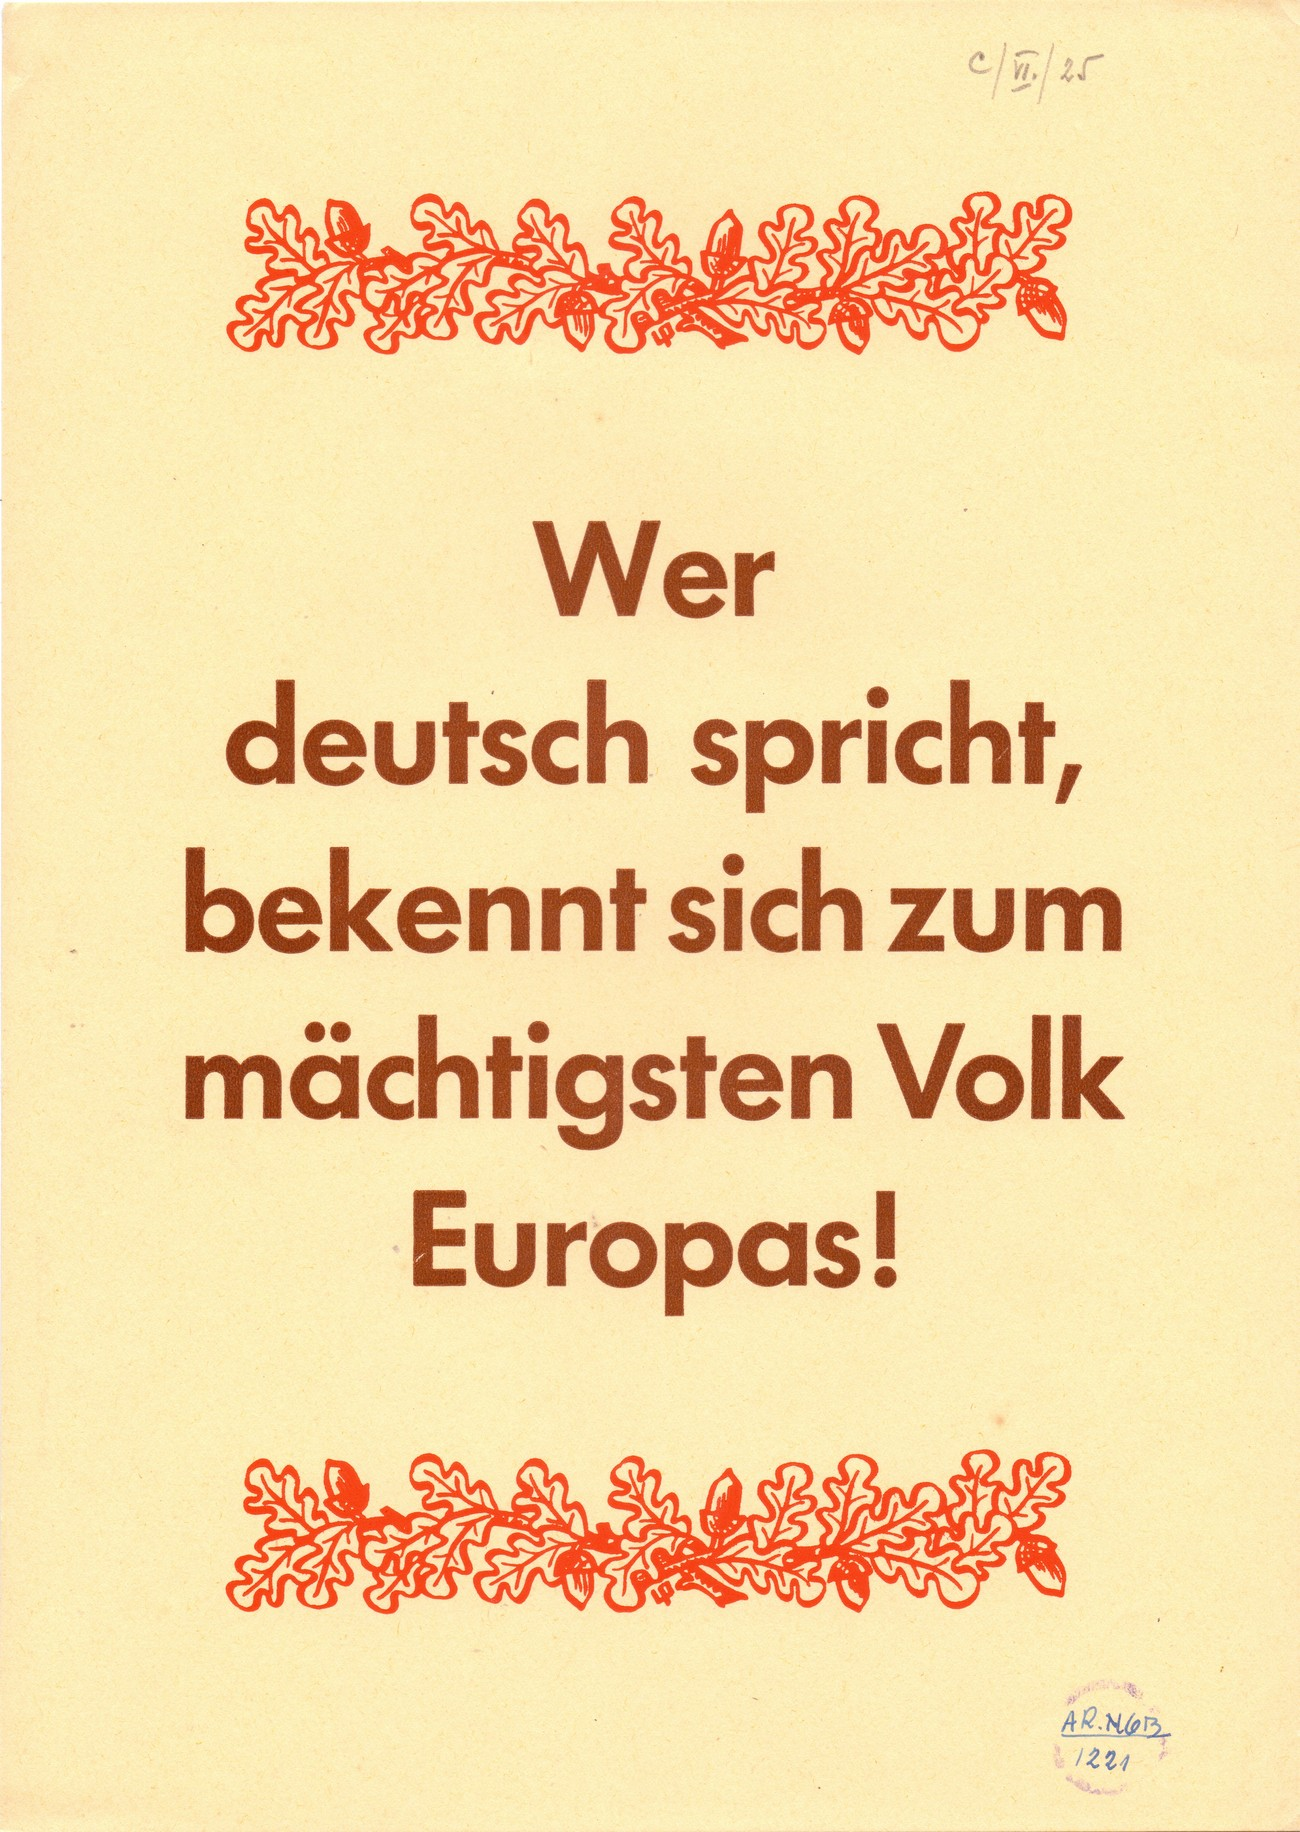 The German occupier forsaw everyone speaking German within four years. This is why adults also needed to attend German language courses. In the photograph, we can see a poster stressing the importance of knowing how to speak German. SI ZAL ŠKL, 0268, 44, C-VI-25.